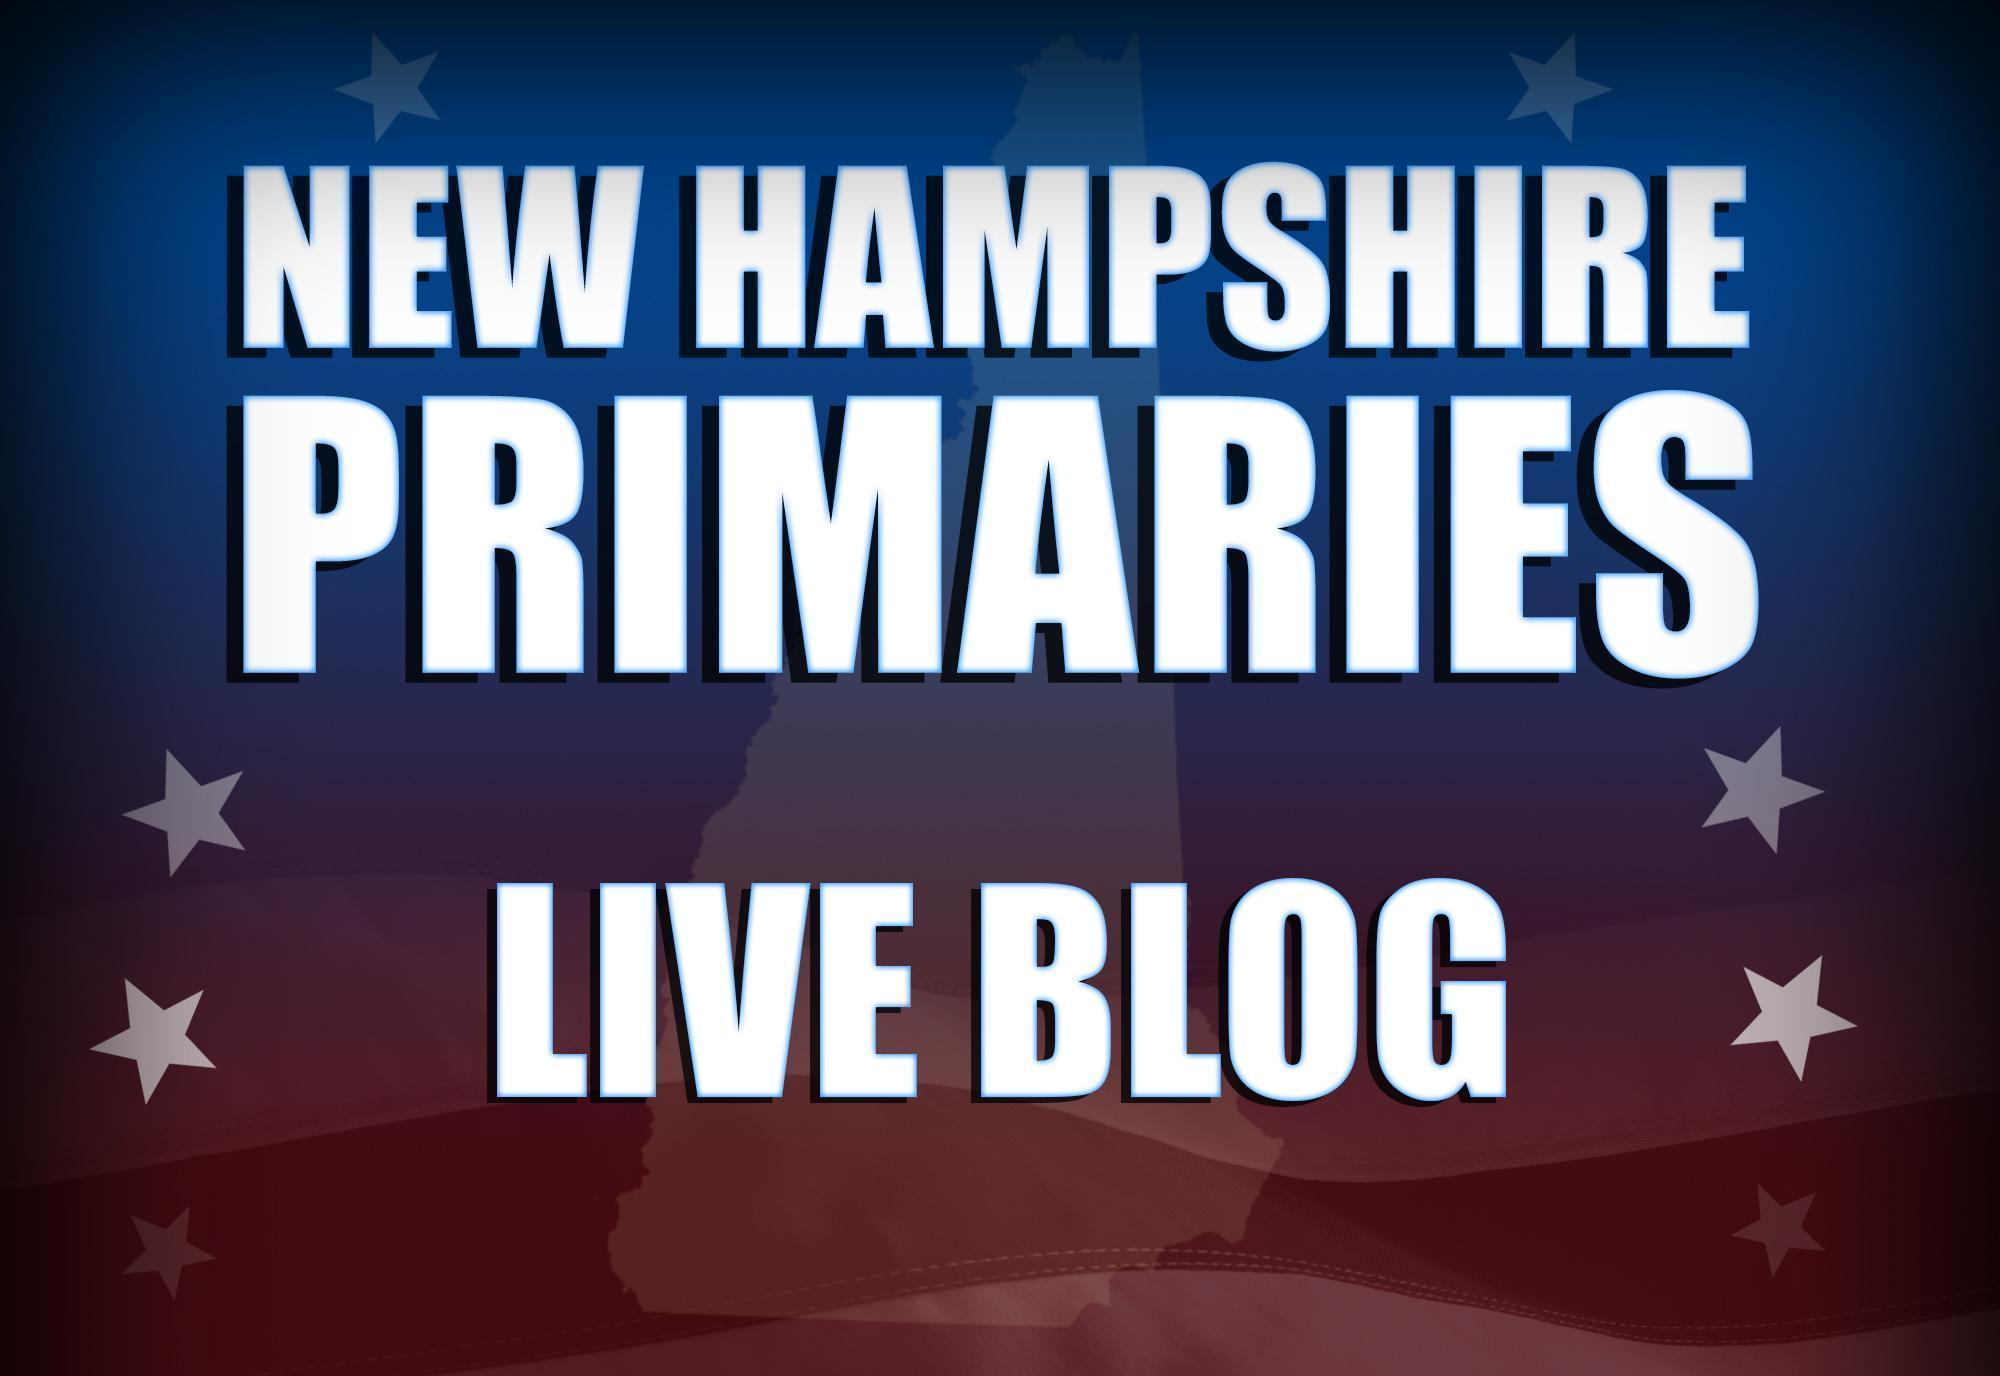 Complete New Hampshire primary coverage